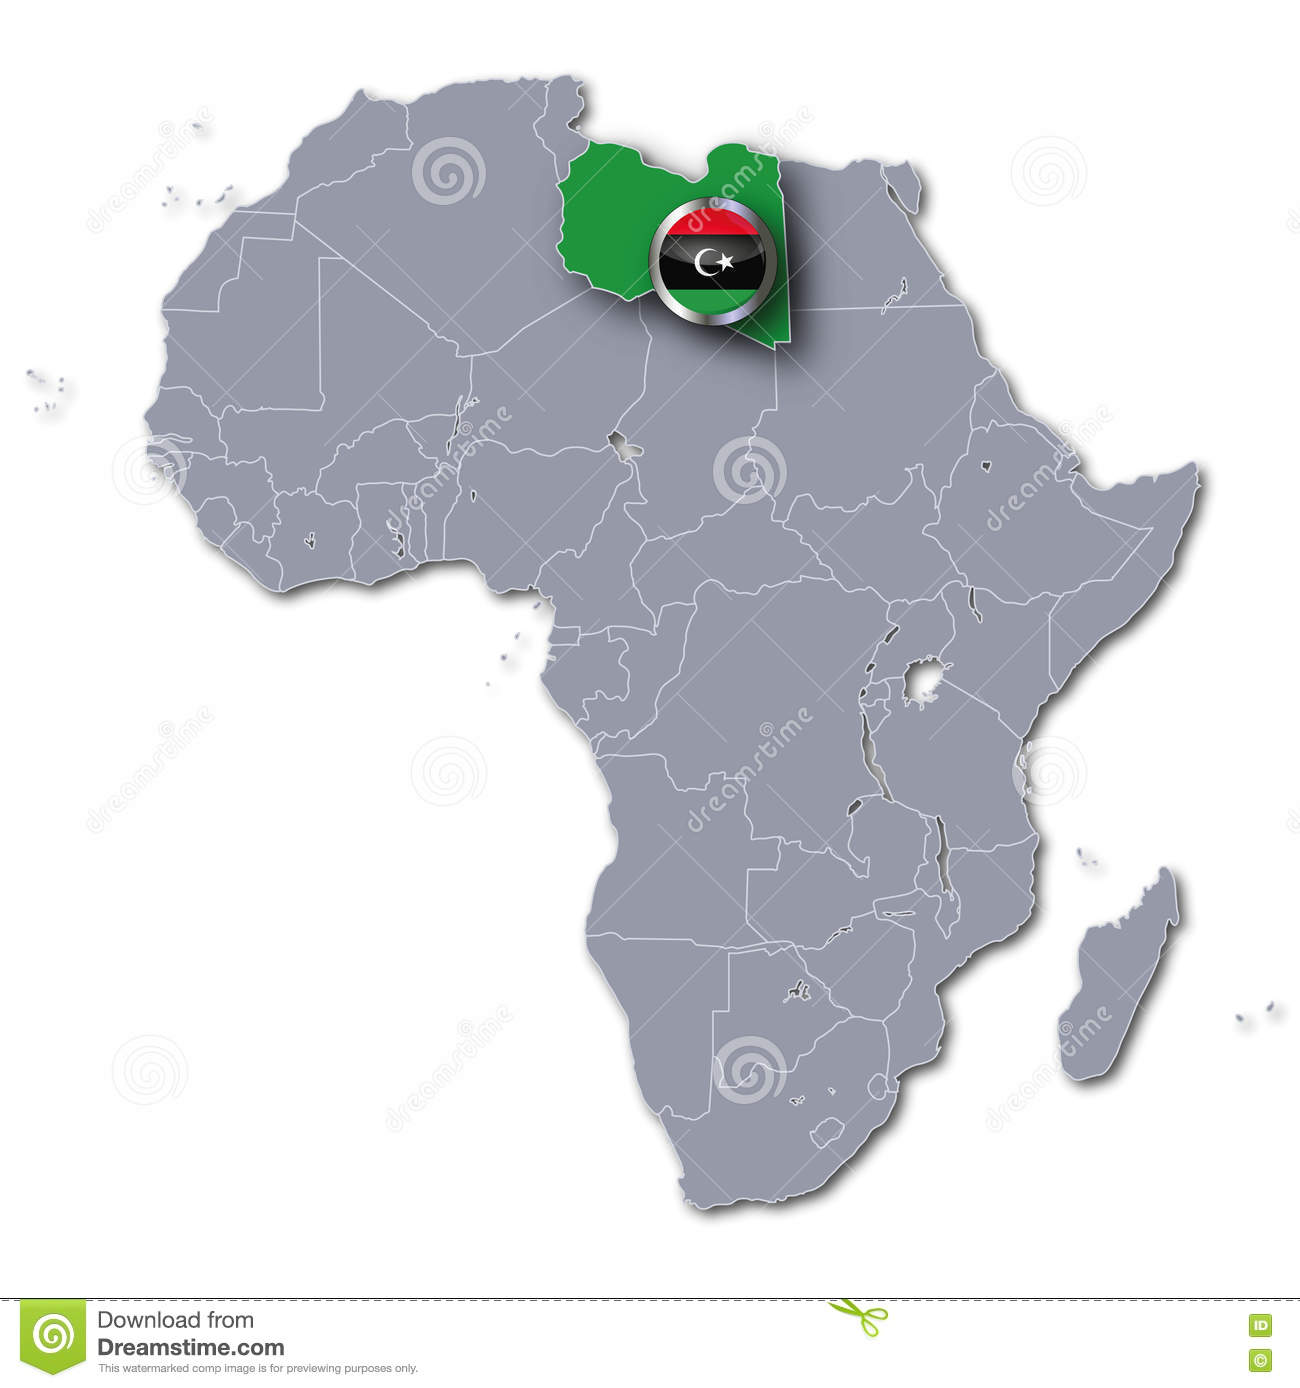 Africa map with libya stock photo image of borders geography download africa map with libya stock photo image of borders geography 70432018 publicscrutiny Gallery